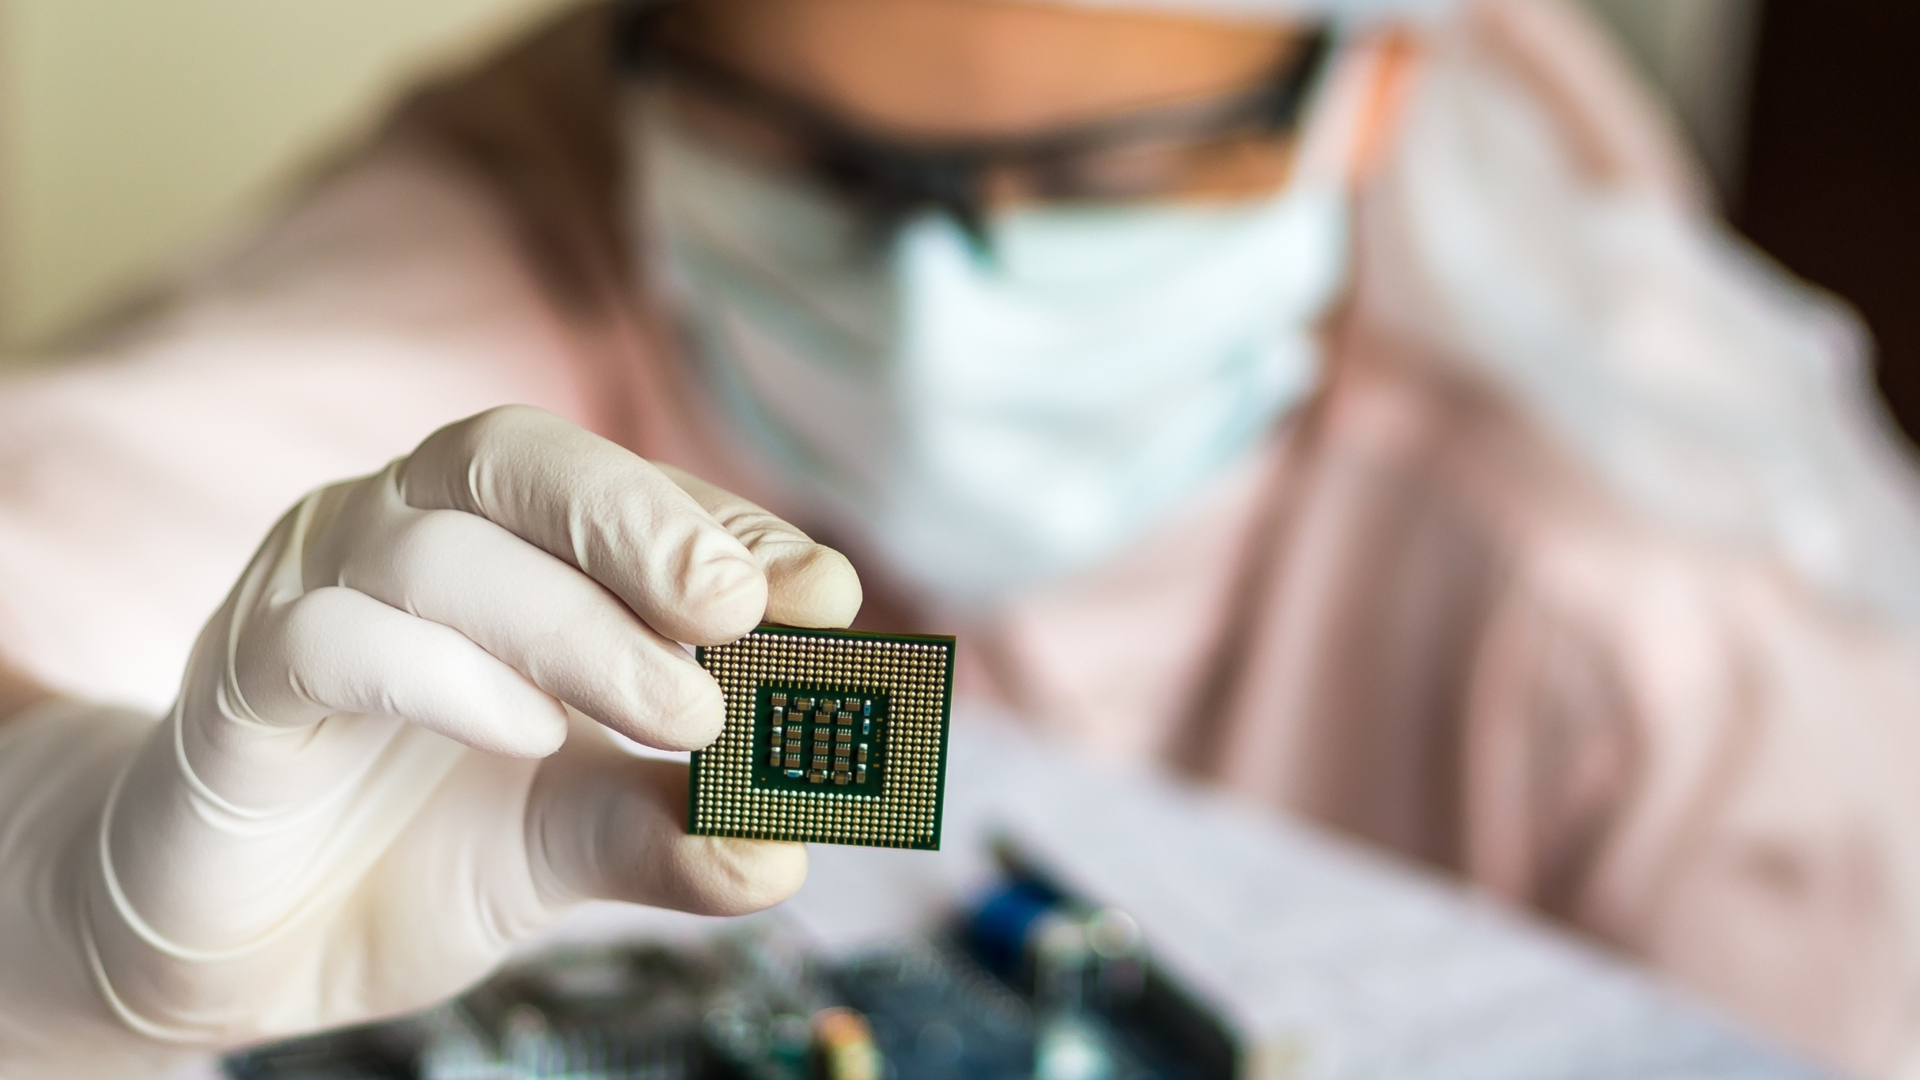 apple,-amd-and-intel-are-taking-gambles-with-the-chip-shortage-–-will-they-pay-off?